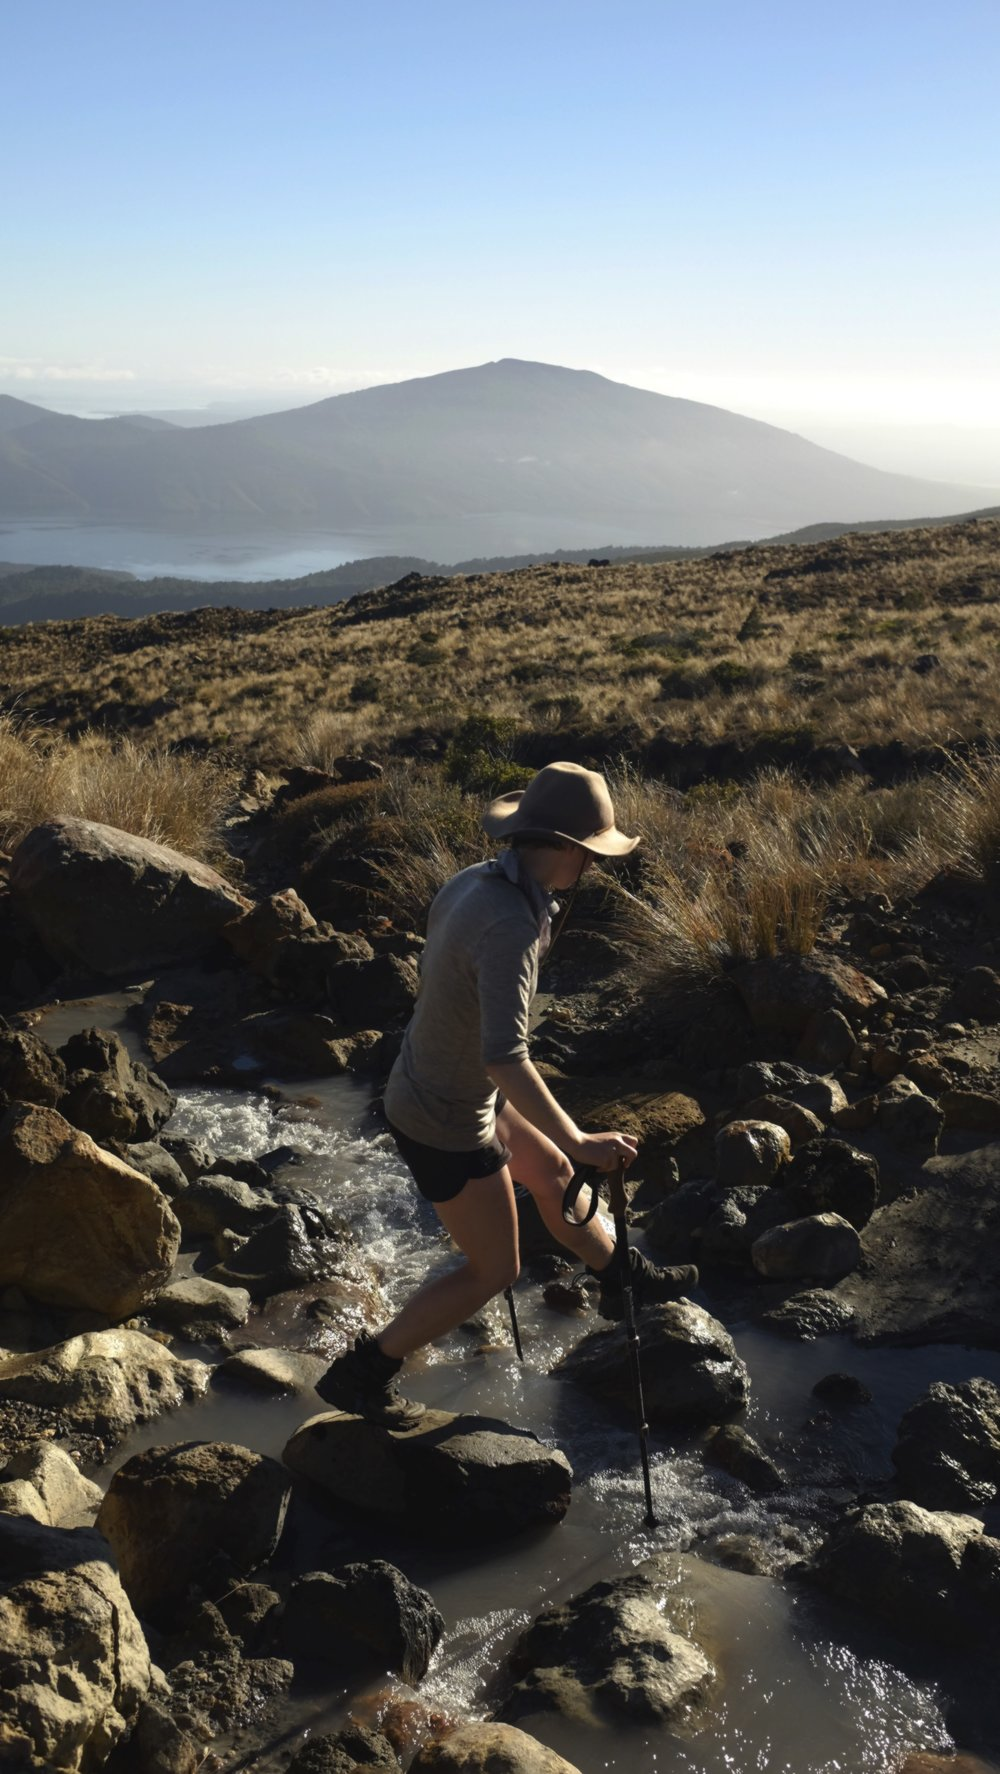 Crossing sulphuric streams on the early morning slopes of Tongariro.